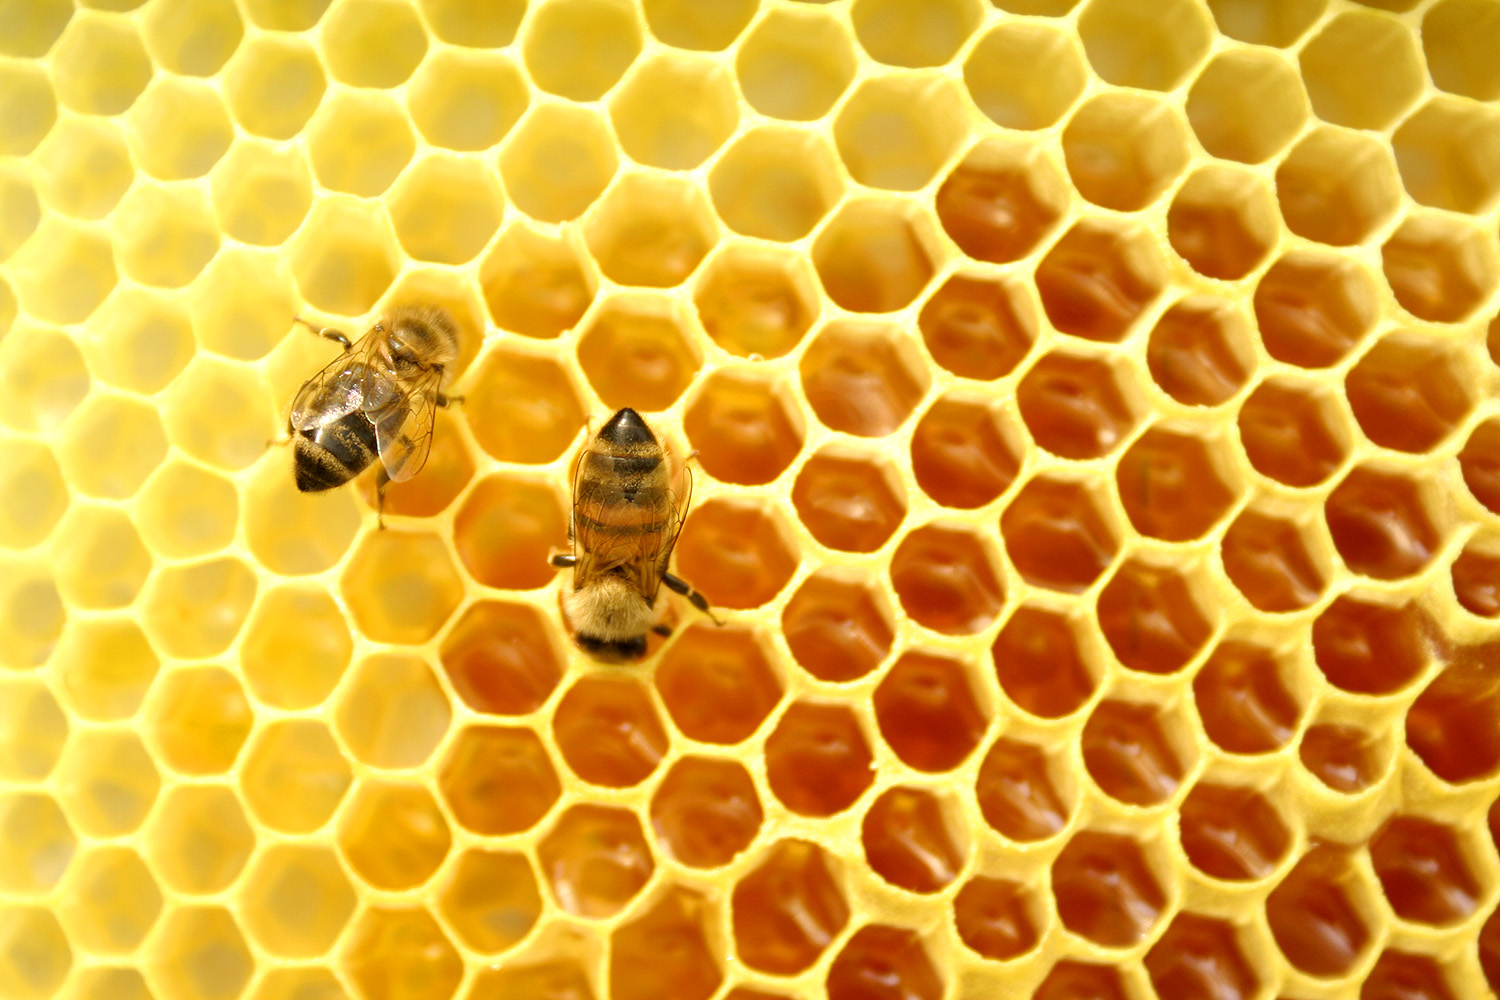 bees-are-busy-to-build-honeycomb